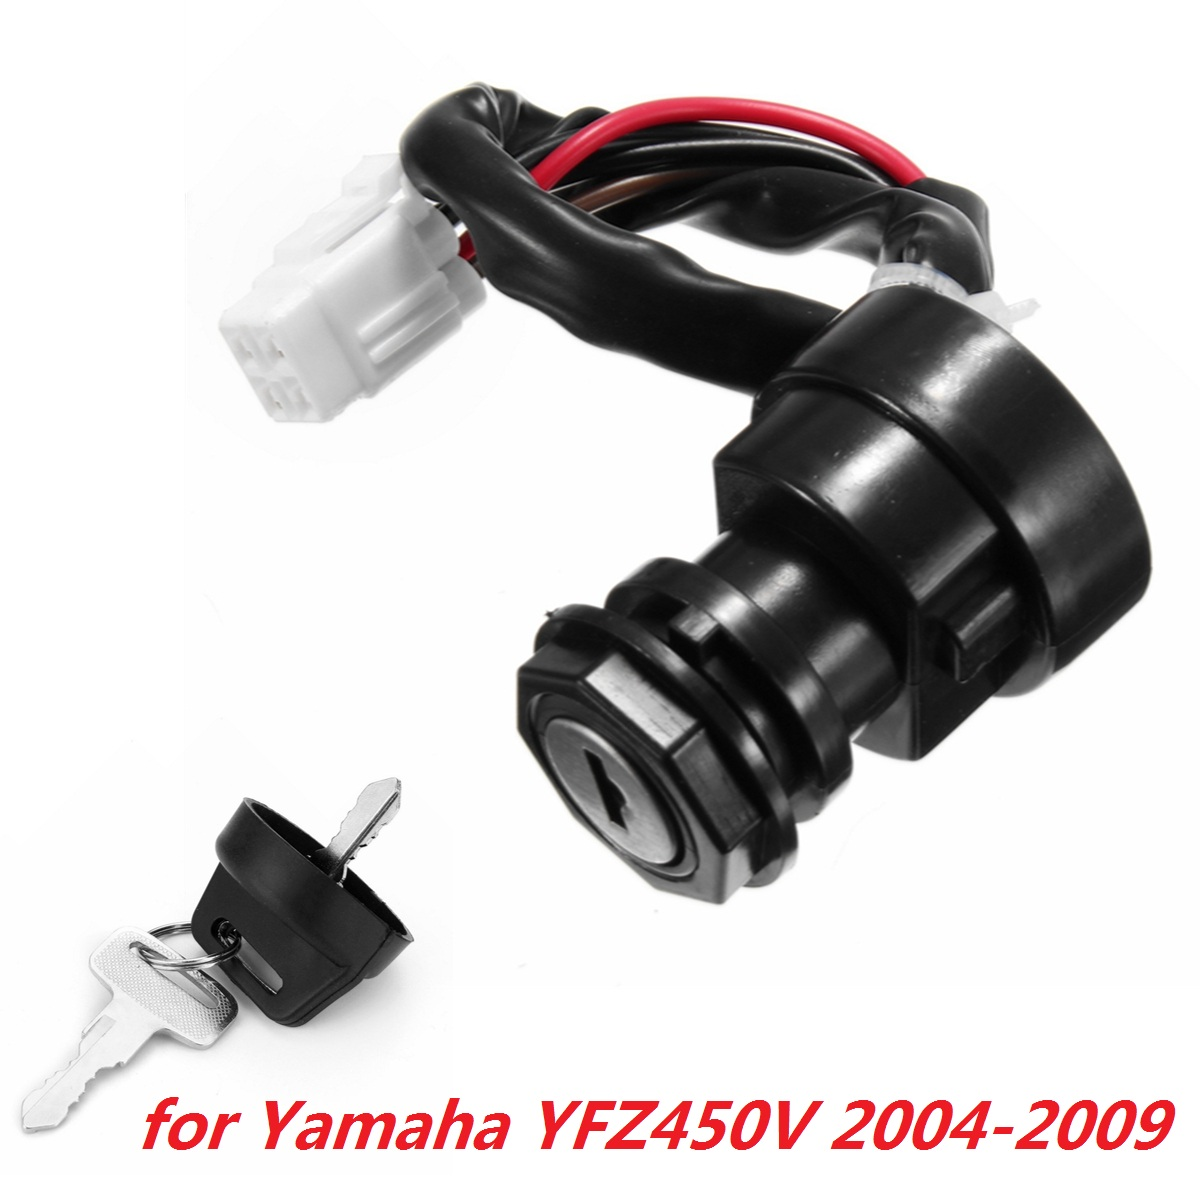 Black Motorcycle Ignition 2 Keys Lock Swicth Set For YAMAHA YFZ450V 2004 2005 2006 2007 2008 2009 ATV